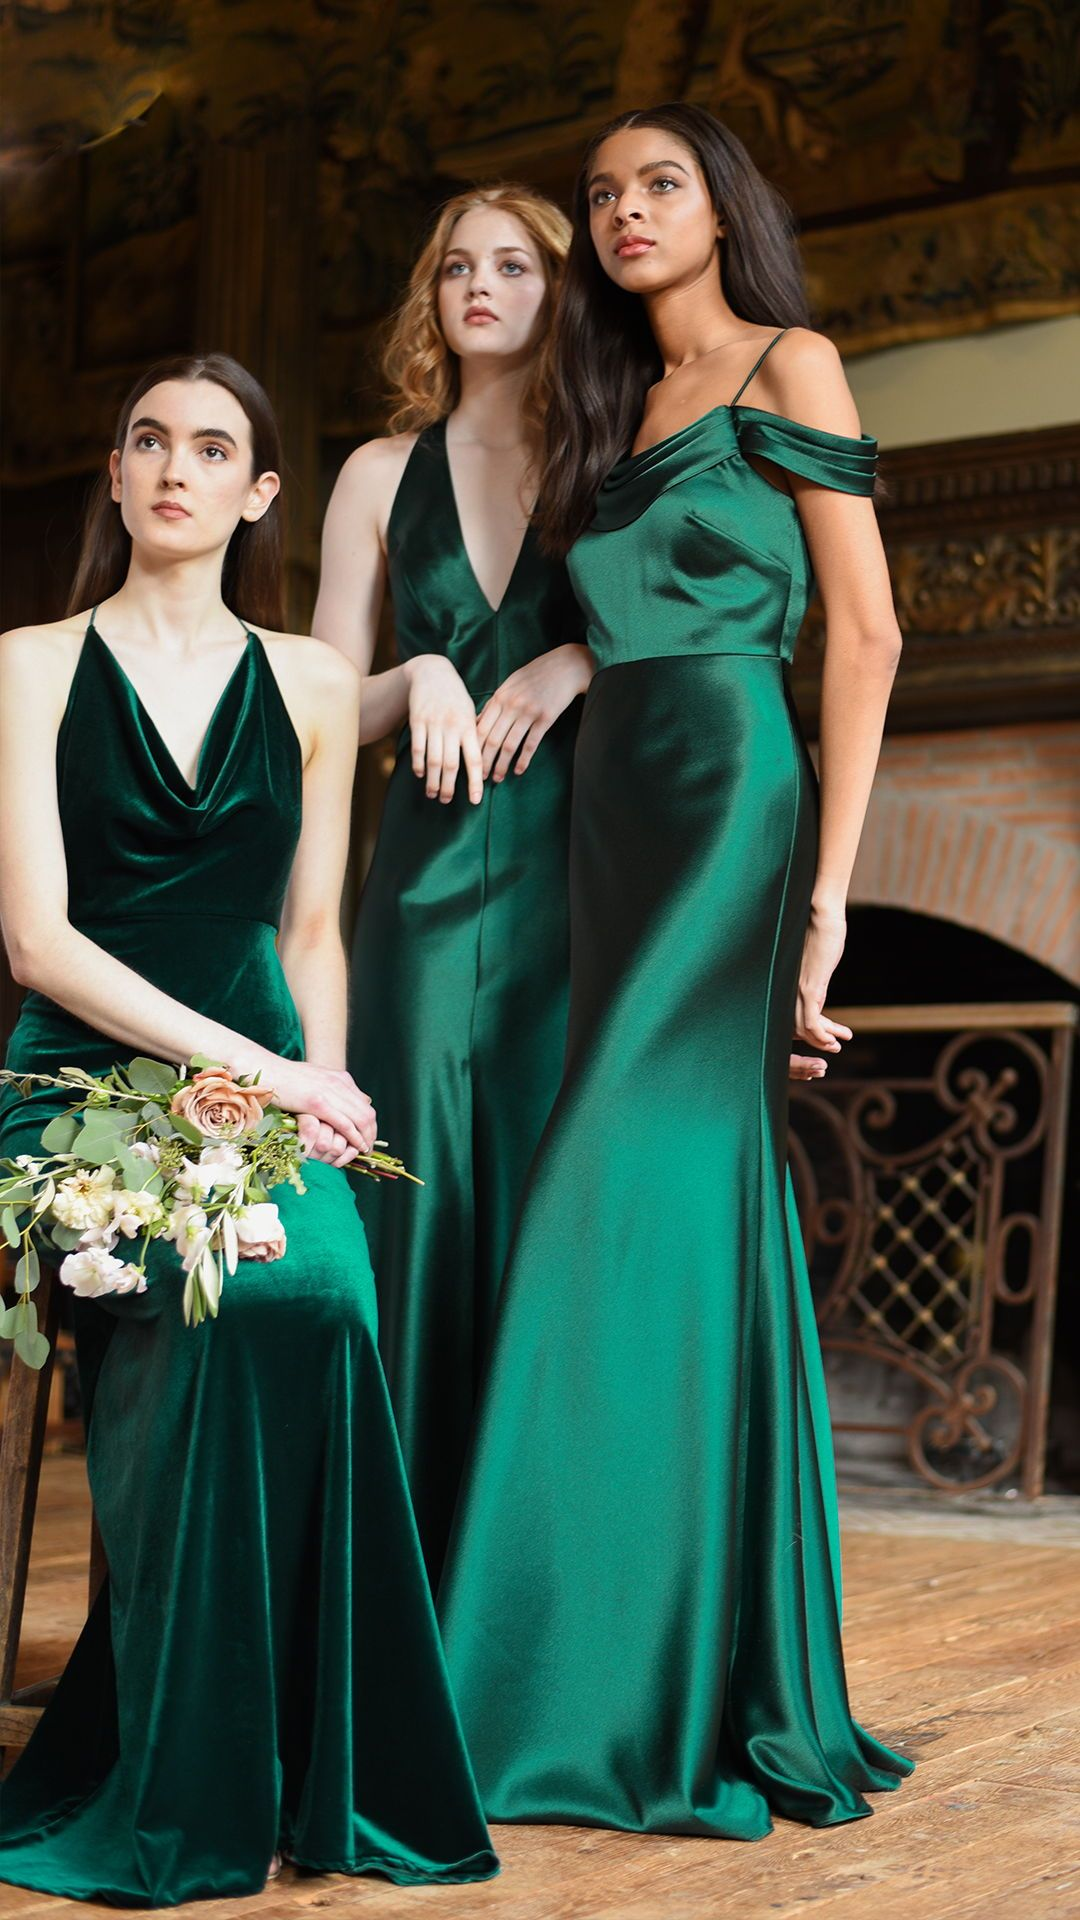 Three women wearing dresses in winter wedding colors: dark green dresses, holding flowers